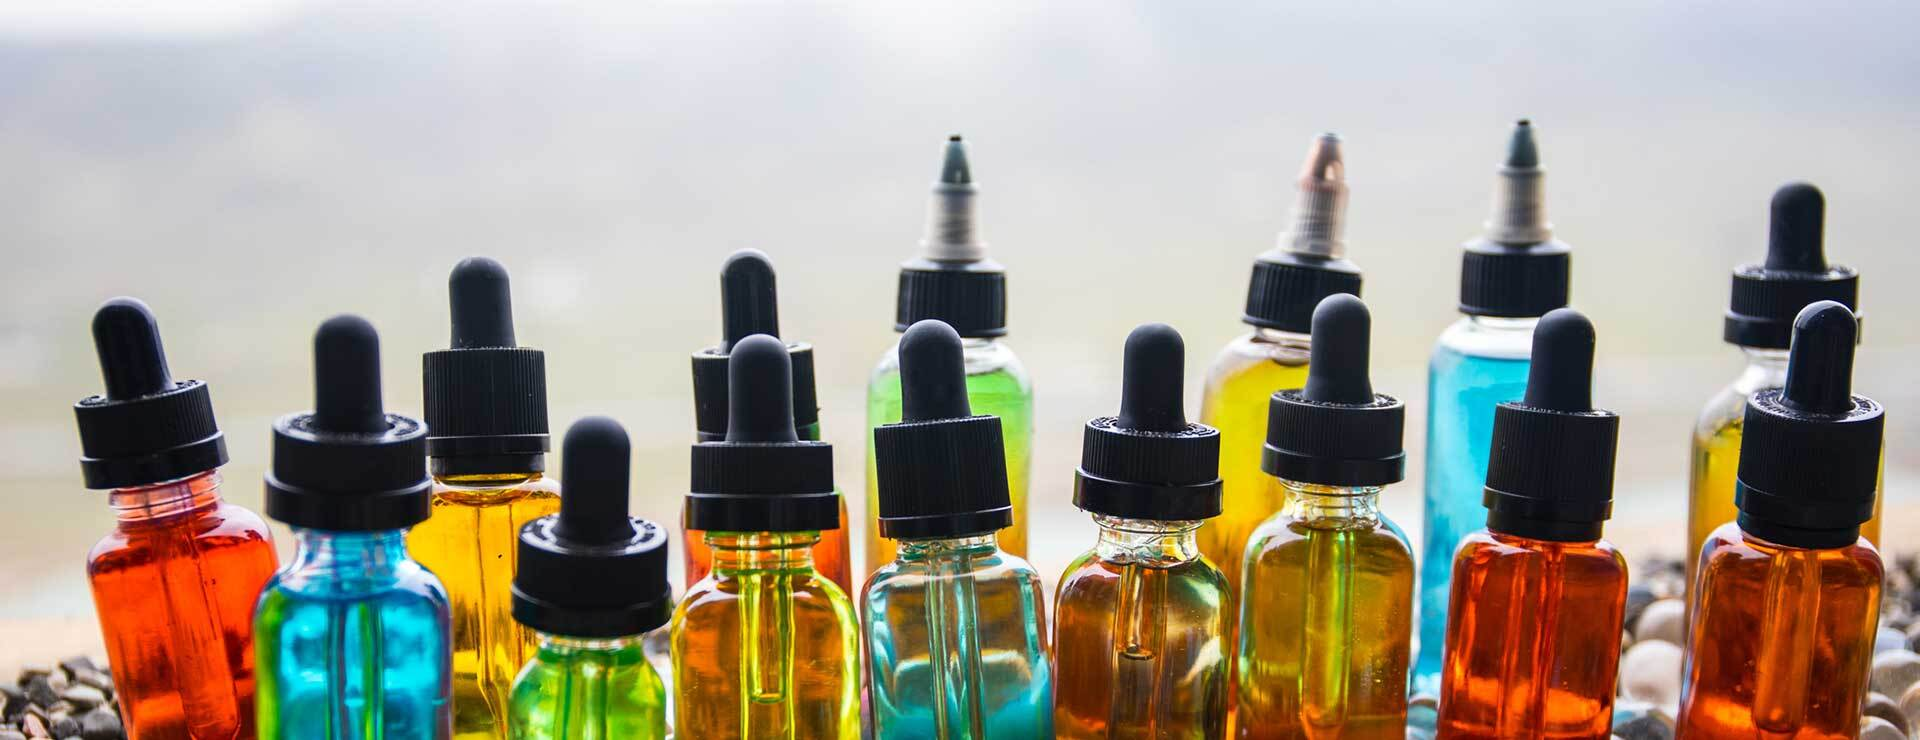 an assortment of vape juice flavor bottles